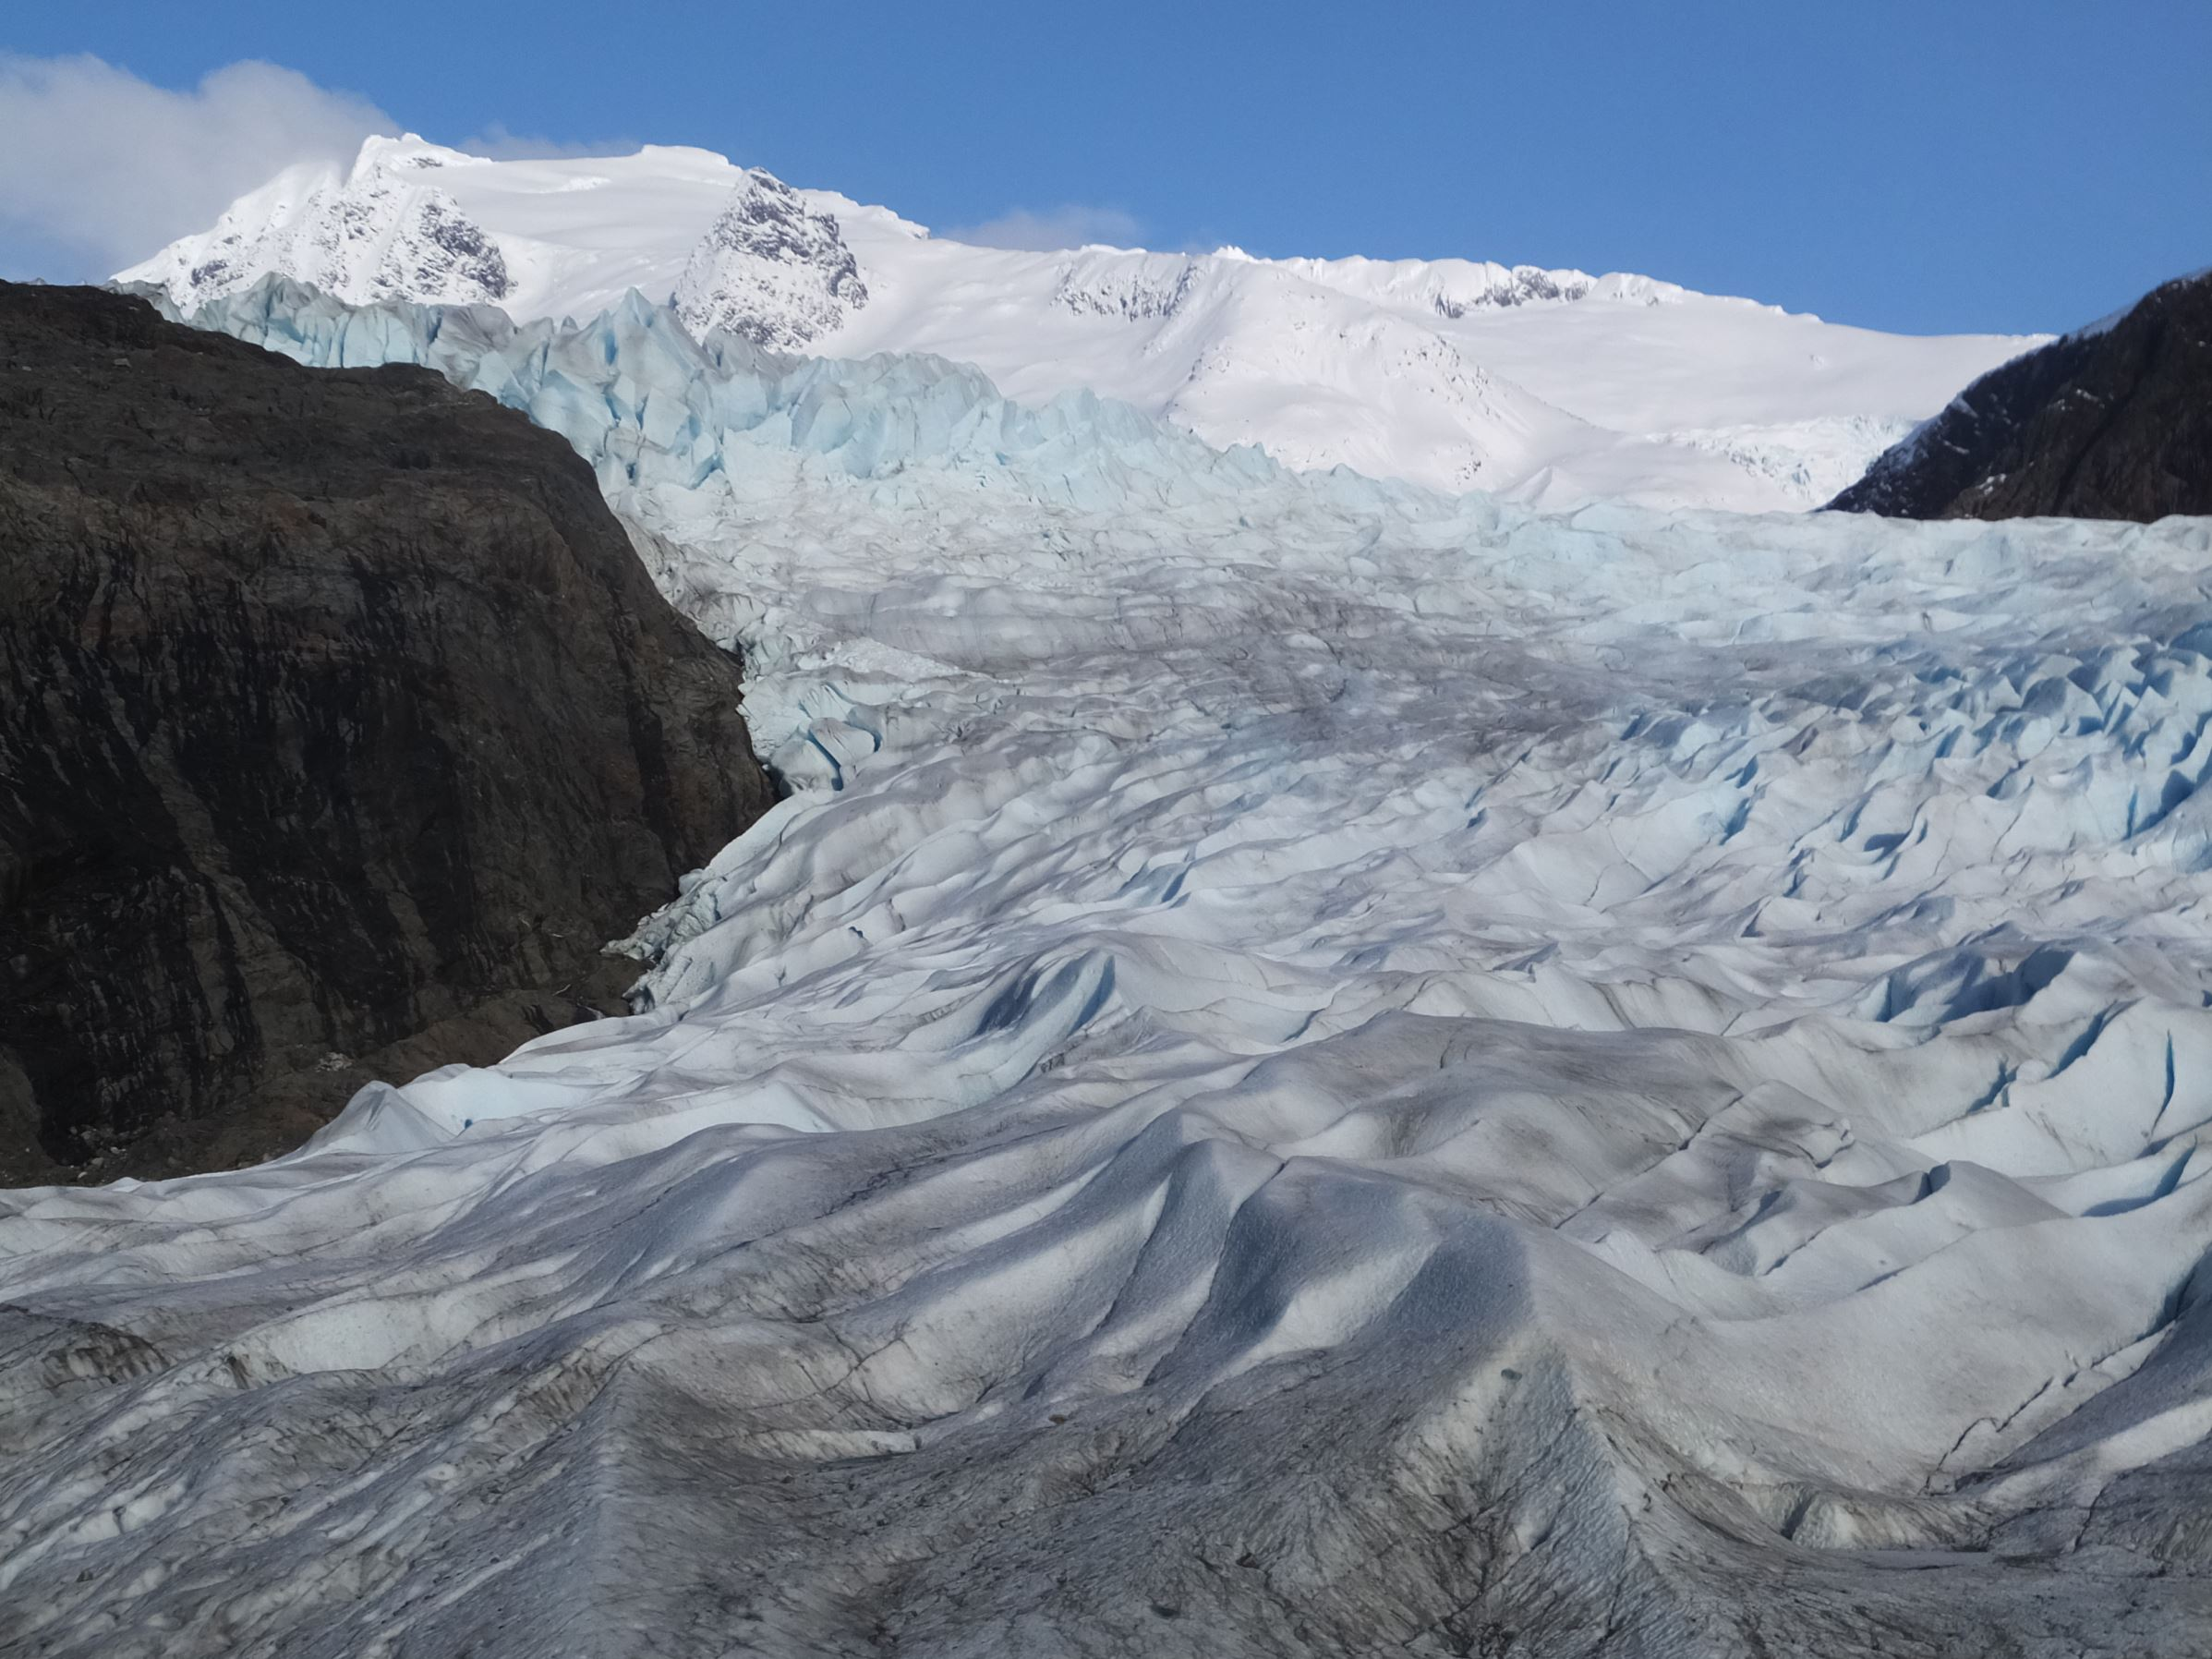 File - In this Feb. 15, 2016 file photo, snow-covered mountains are seen behind the Mendenhall Glacier in Juneau, Alaska. The massive Alaska ice field that feeds Juneau's Mendenhall Glacier, a tourist attraction viewed by hundreds of thousands each year, could be gone by 2200 if climate warming trends continue, according to a new University of Alaska Fairbanks study.